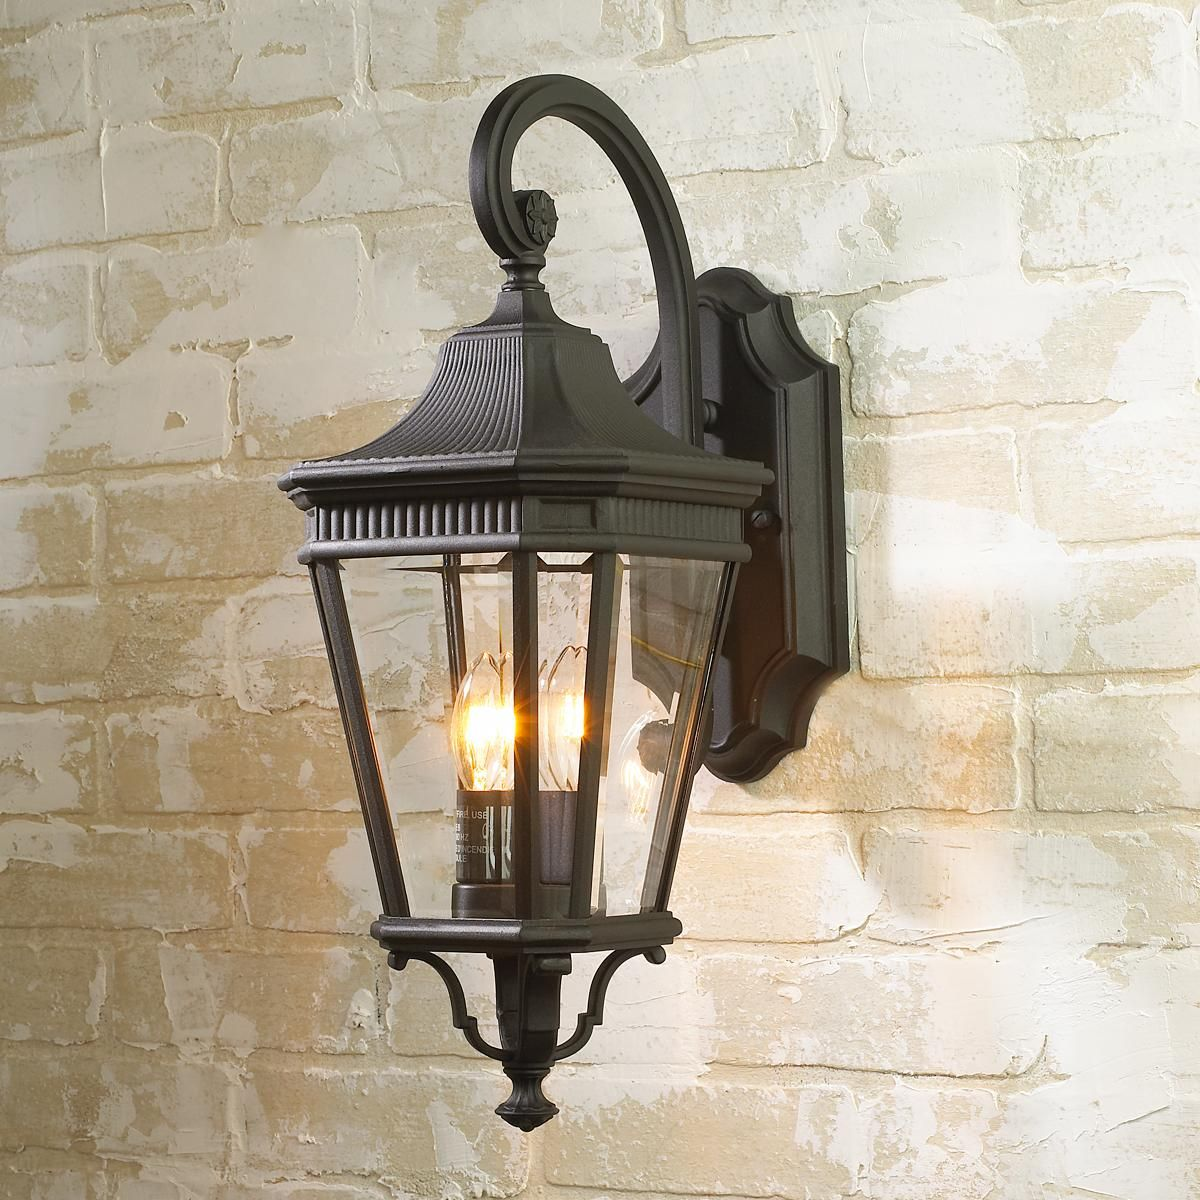 Fluted Trim Outdoor Light Medium Outdoor Wall Lantern Outdoor Lighting Outdoor Light Fixtures